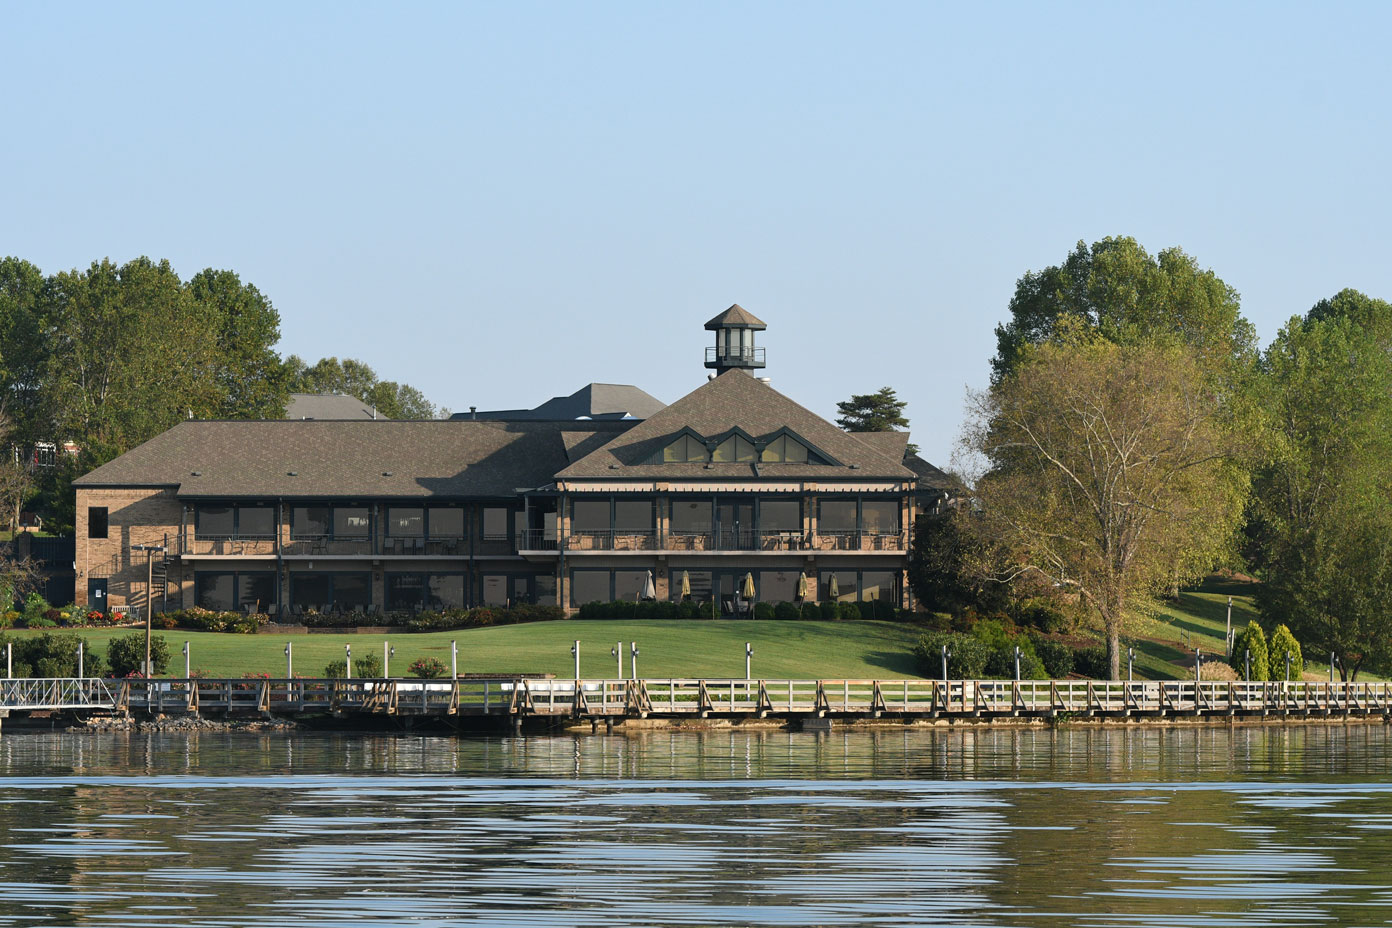 View of the Tellico Village Yacht Club from the lake.